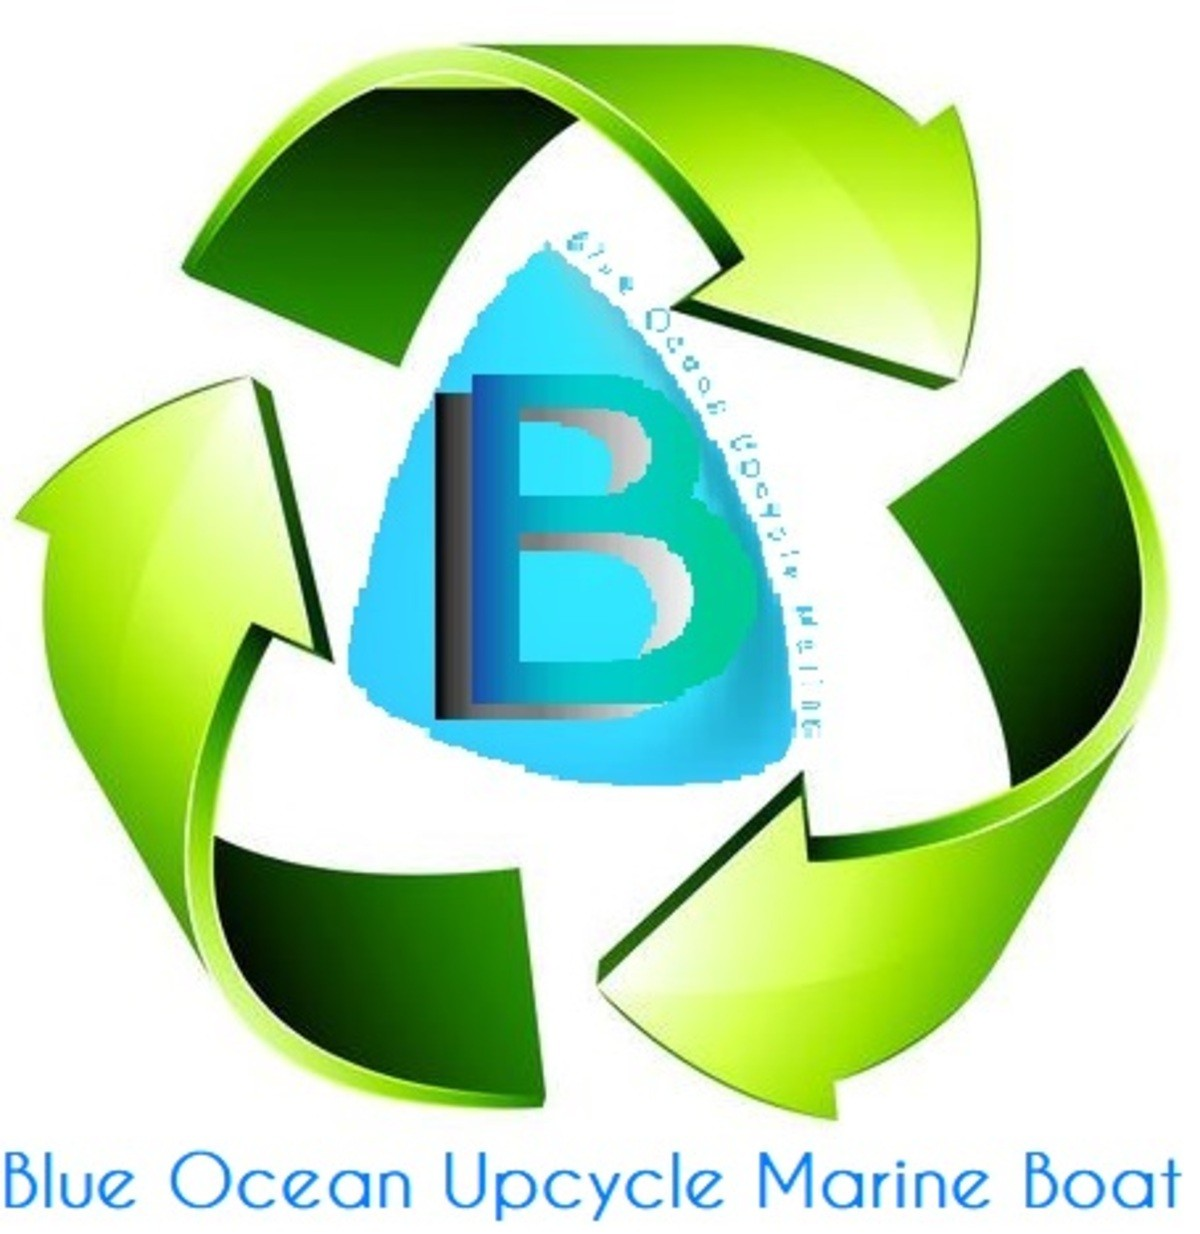 Blue Ocean Upcycle Marine Boat